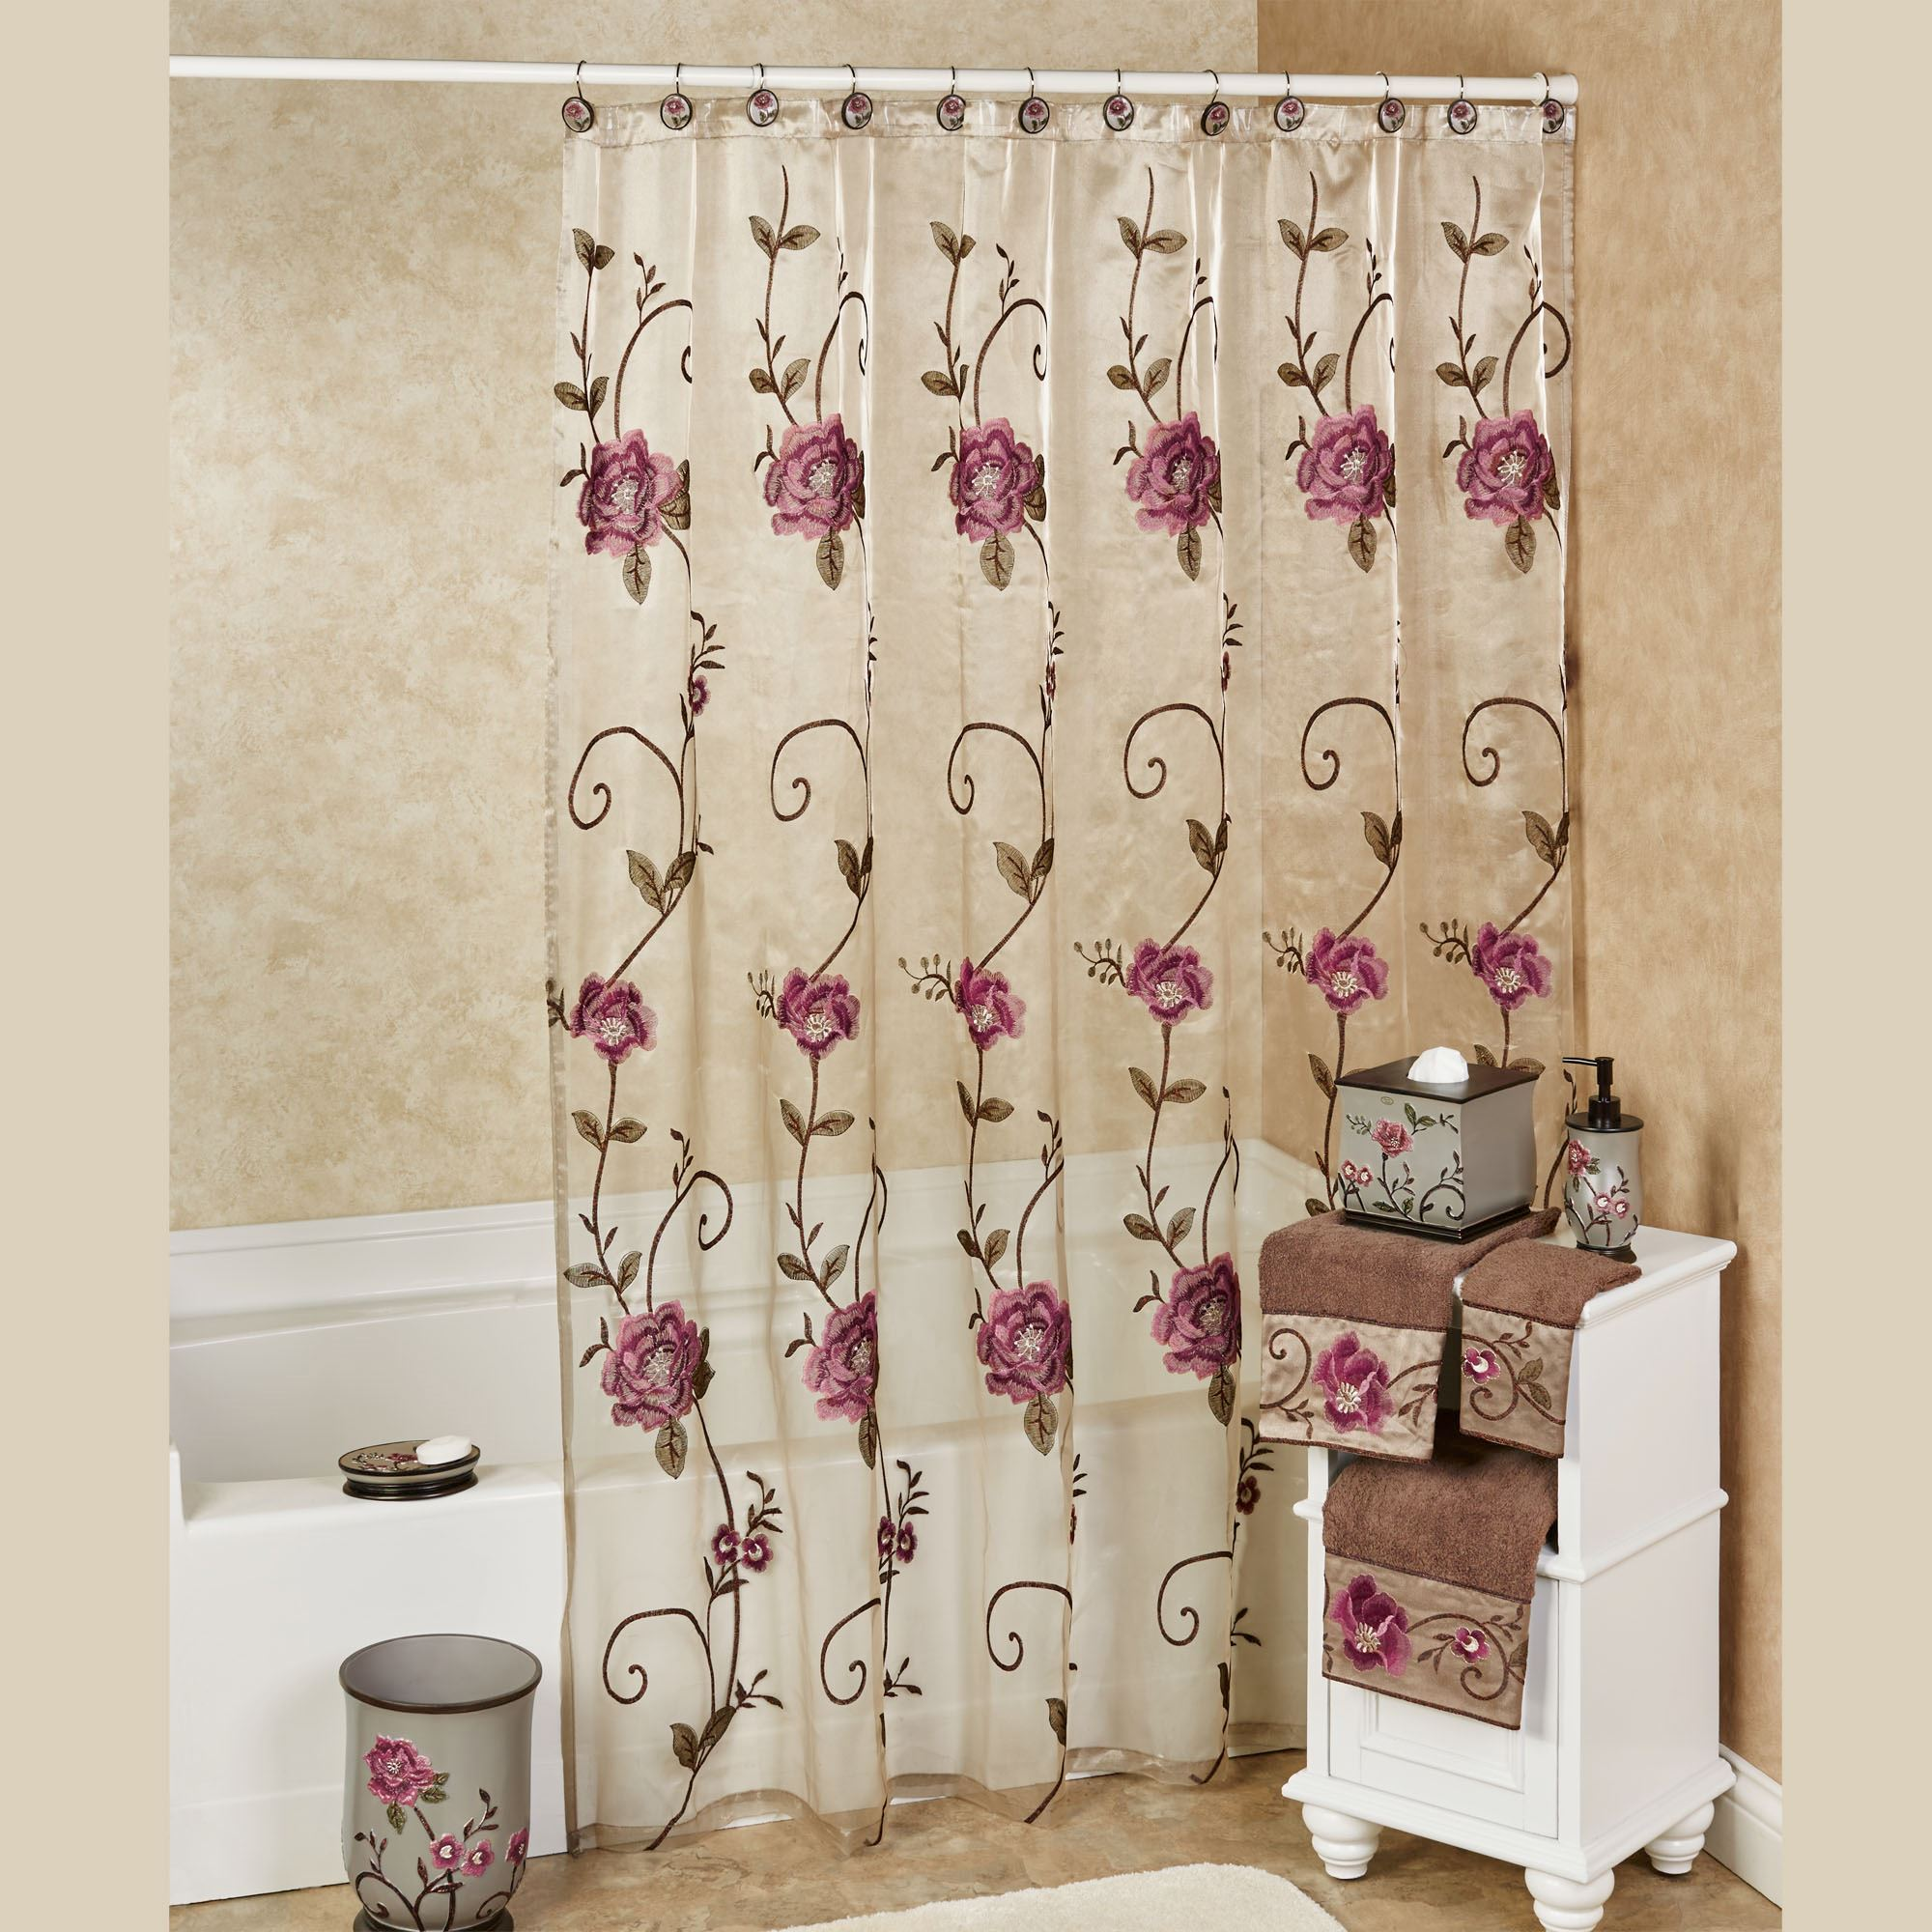 curtains v with x fiore p curtain liner light taupe shower